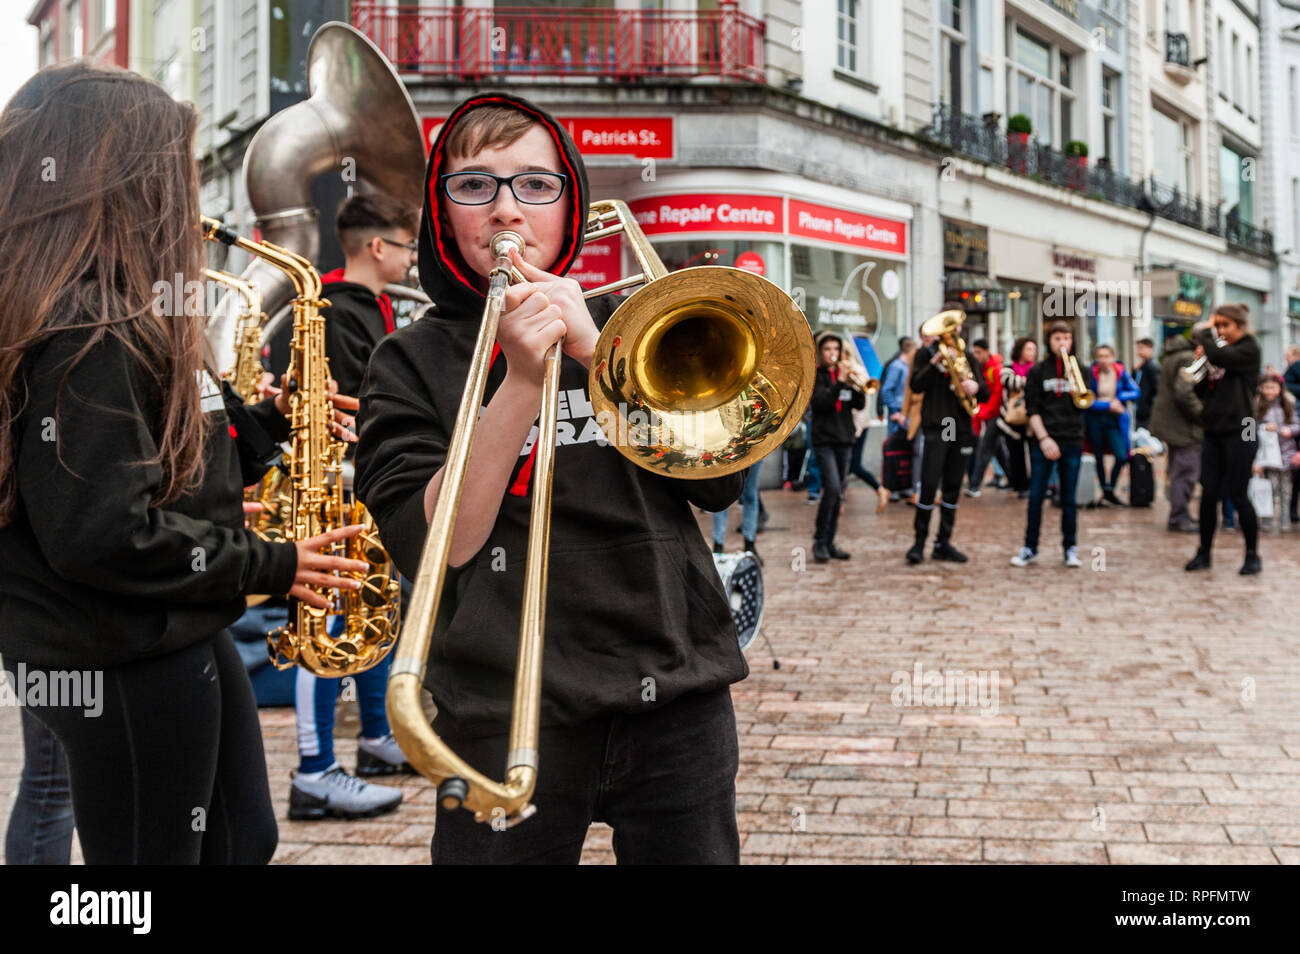 Cork, Ireland. 22nd Feb, 2019. Cork based brass band 'Rebel Brass' played in Cork city centre in front of huge crowds today. The band, made up of 12 to 18 year old young people, played on the Late Late Toy Show in November. Credit: Andy Gibson/Alamy Live News. - Stock Image